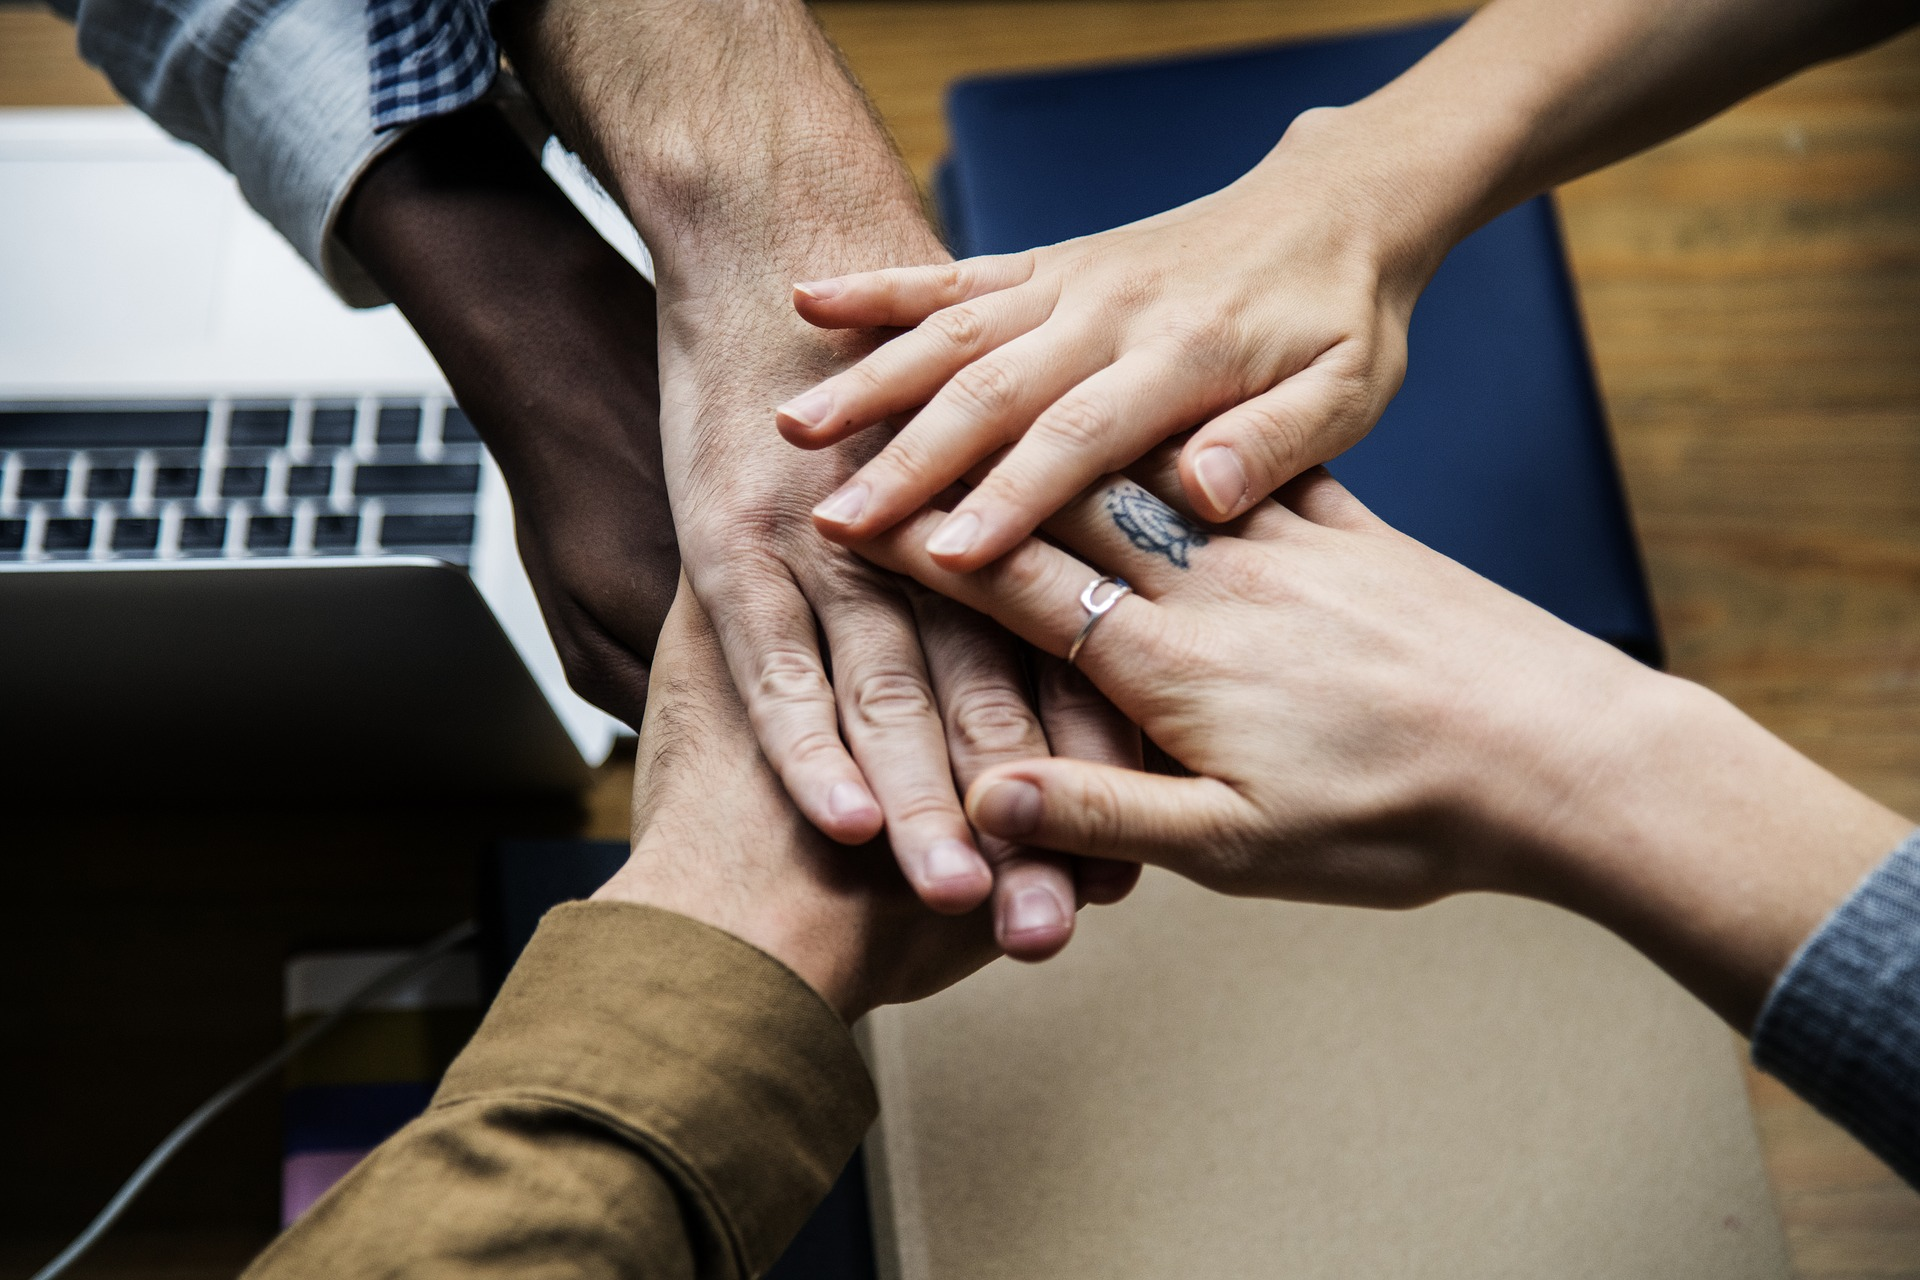 Five hands held together above an office desk illustrates social inclusion.